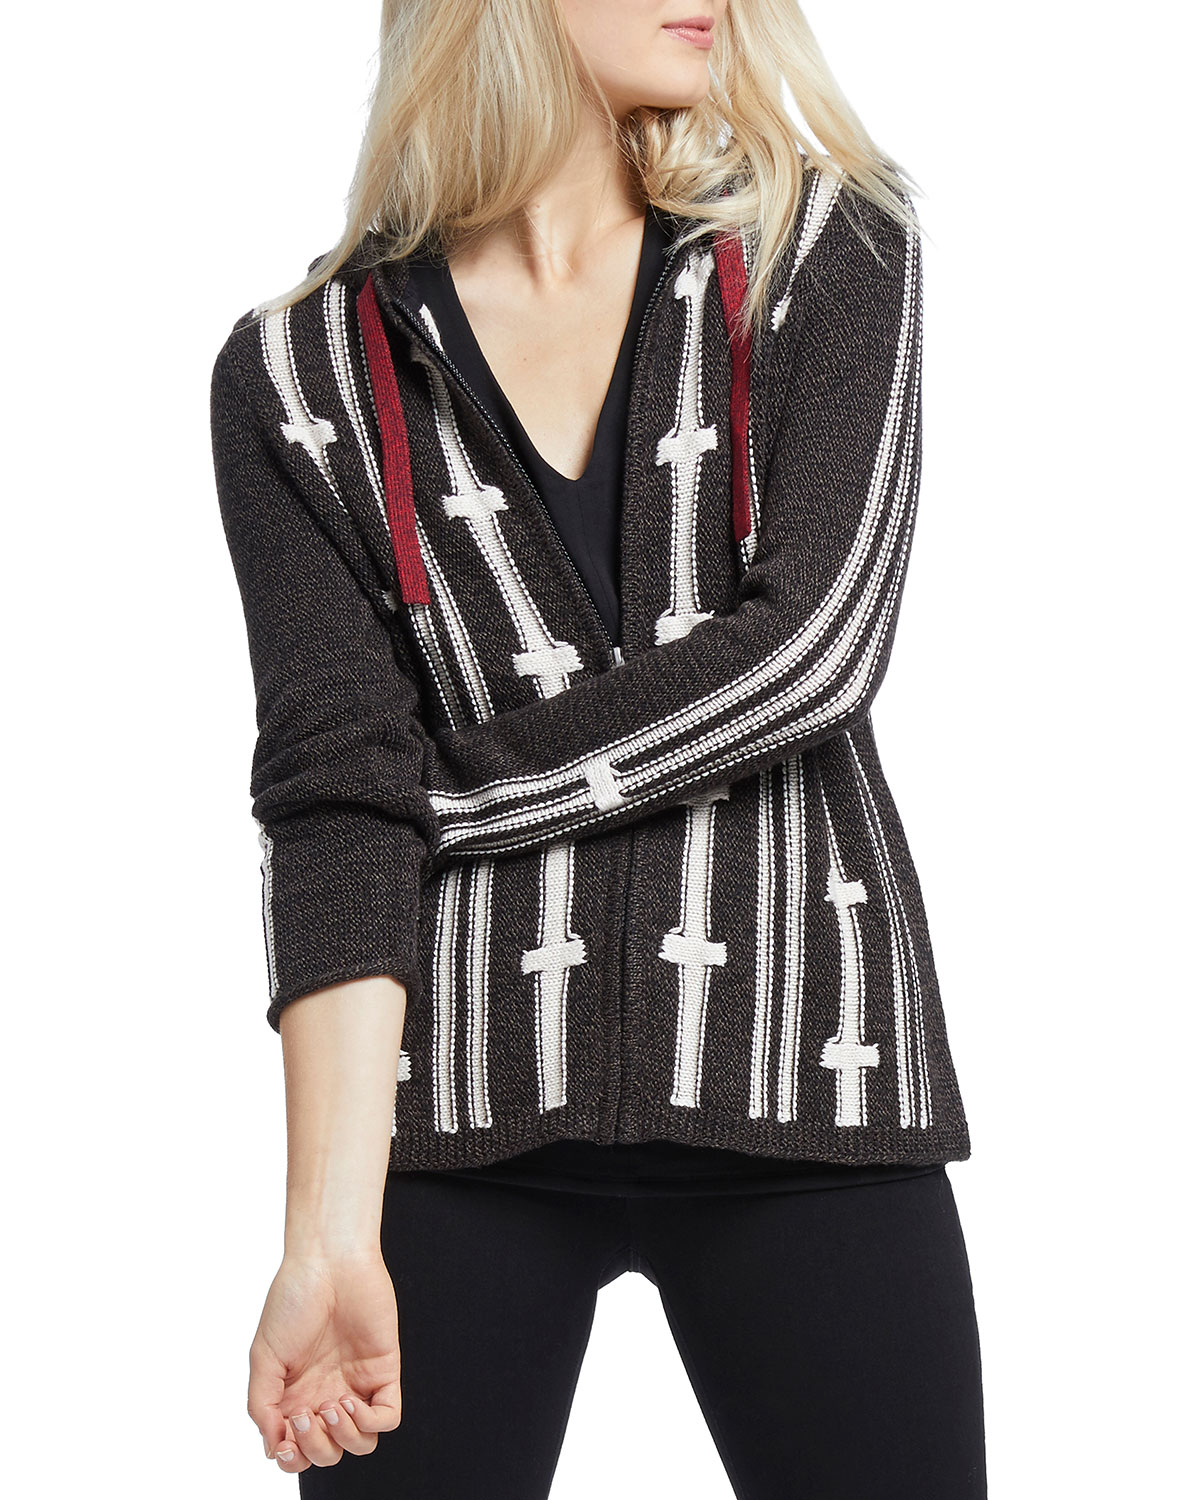 New Tracks Striped Zip Front Hooded Cardigan by Nic+Zoe